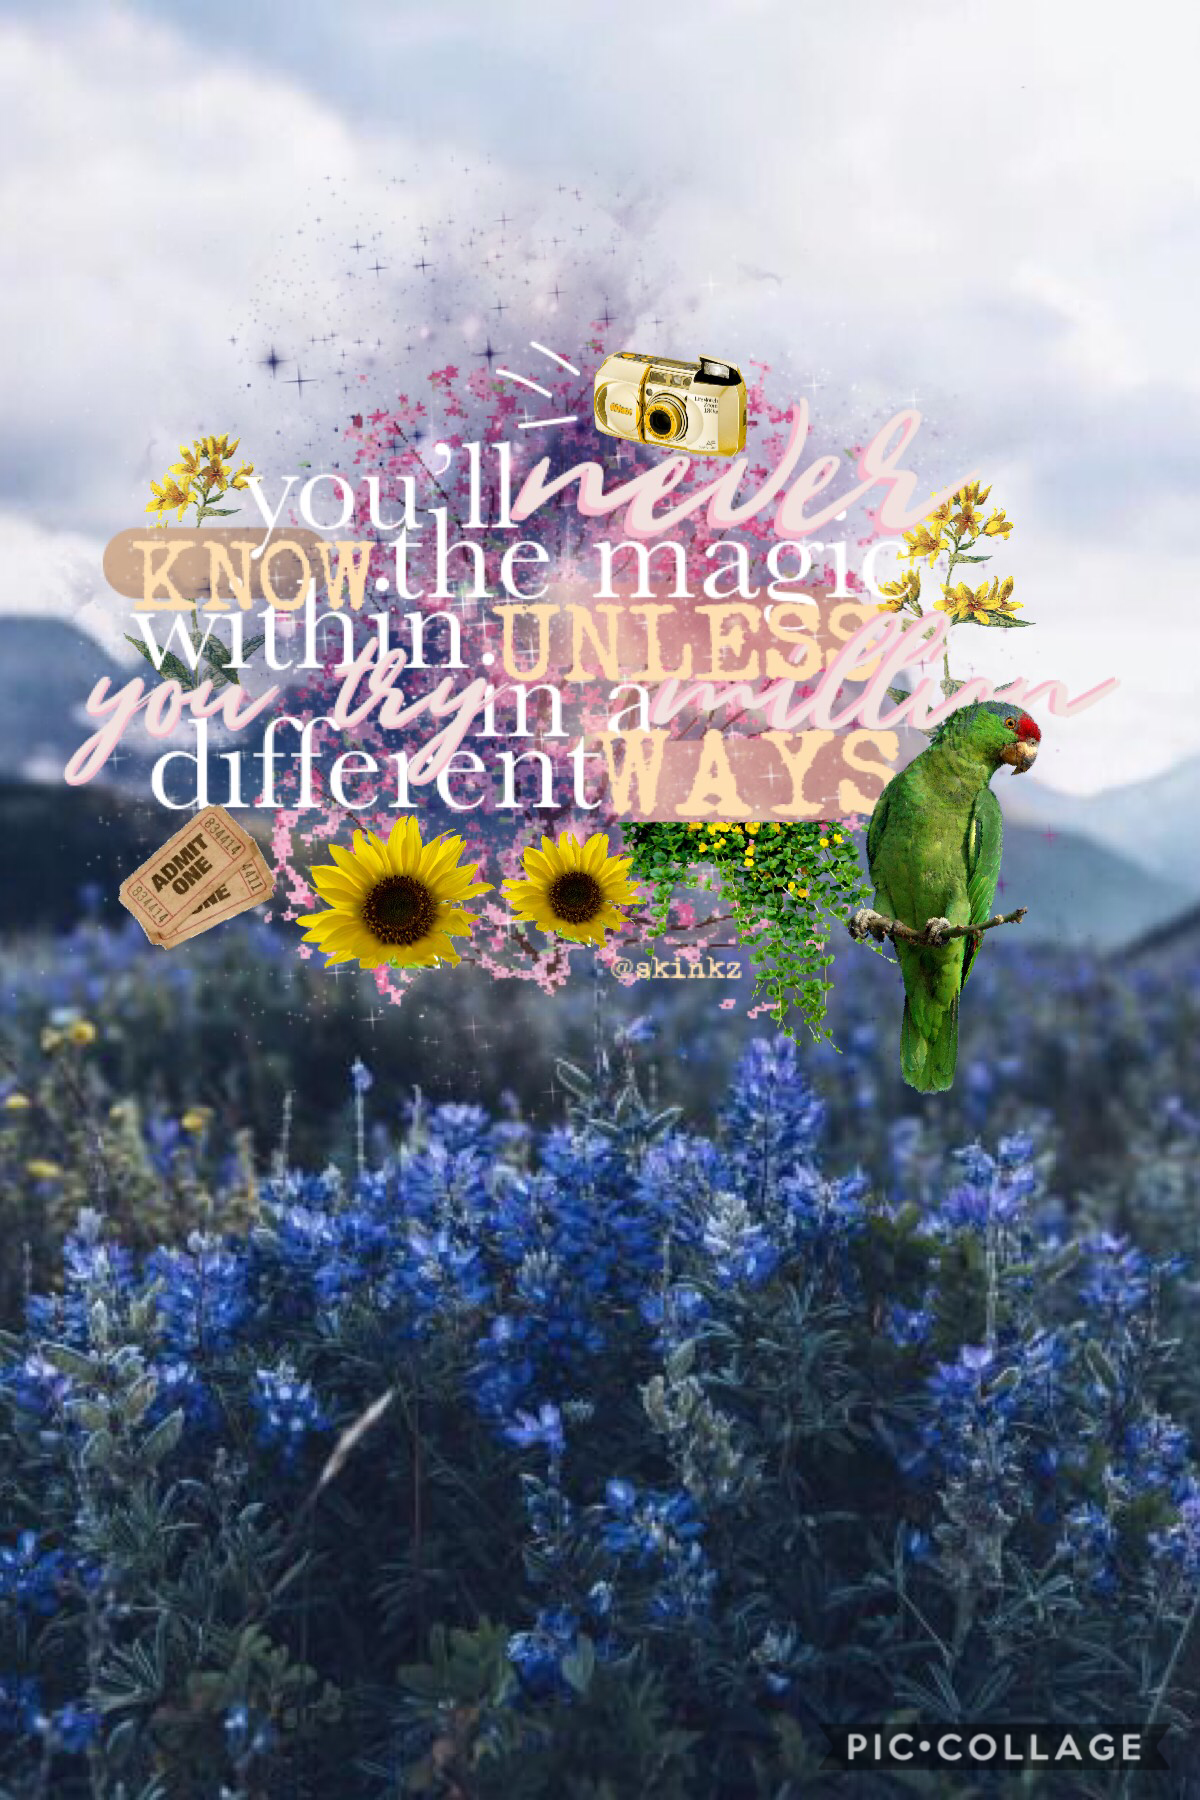 i love new pngs! TAP  This took so long omg 😂😂👍🏻👍🏻  QOTD: what is your favorite  png/ pngs    AOTD: I'm remixing mine!